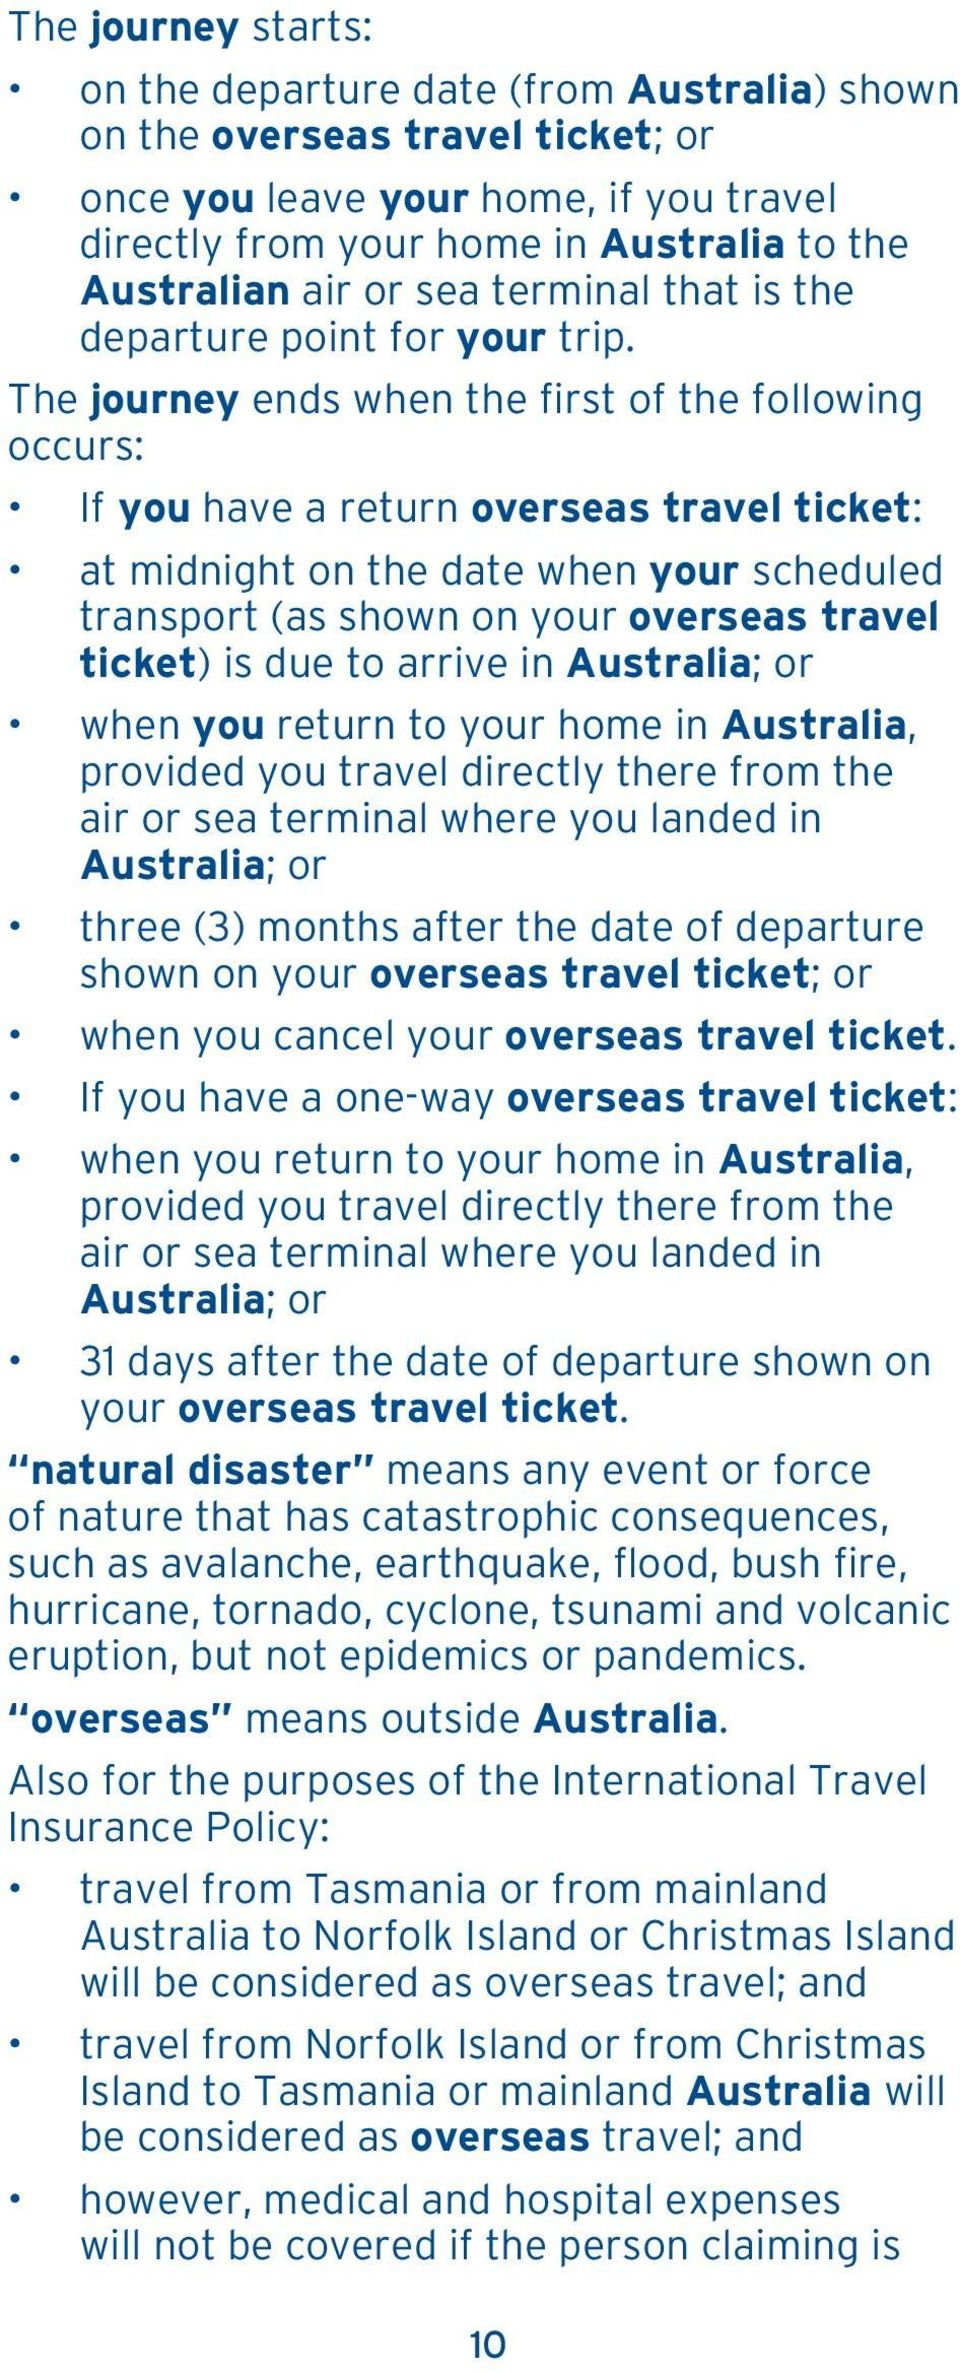 The journey ends when the first of the following occurs: If you have a return overseas travel ticket: at midnight on the date when your scheduled transport (as shown on your overseas travel ticket)